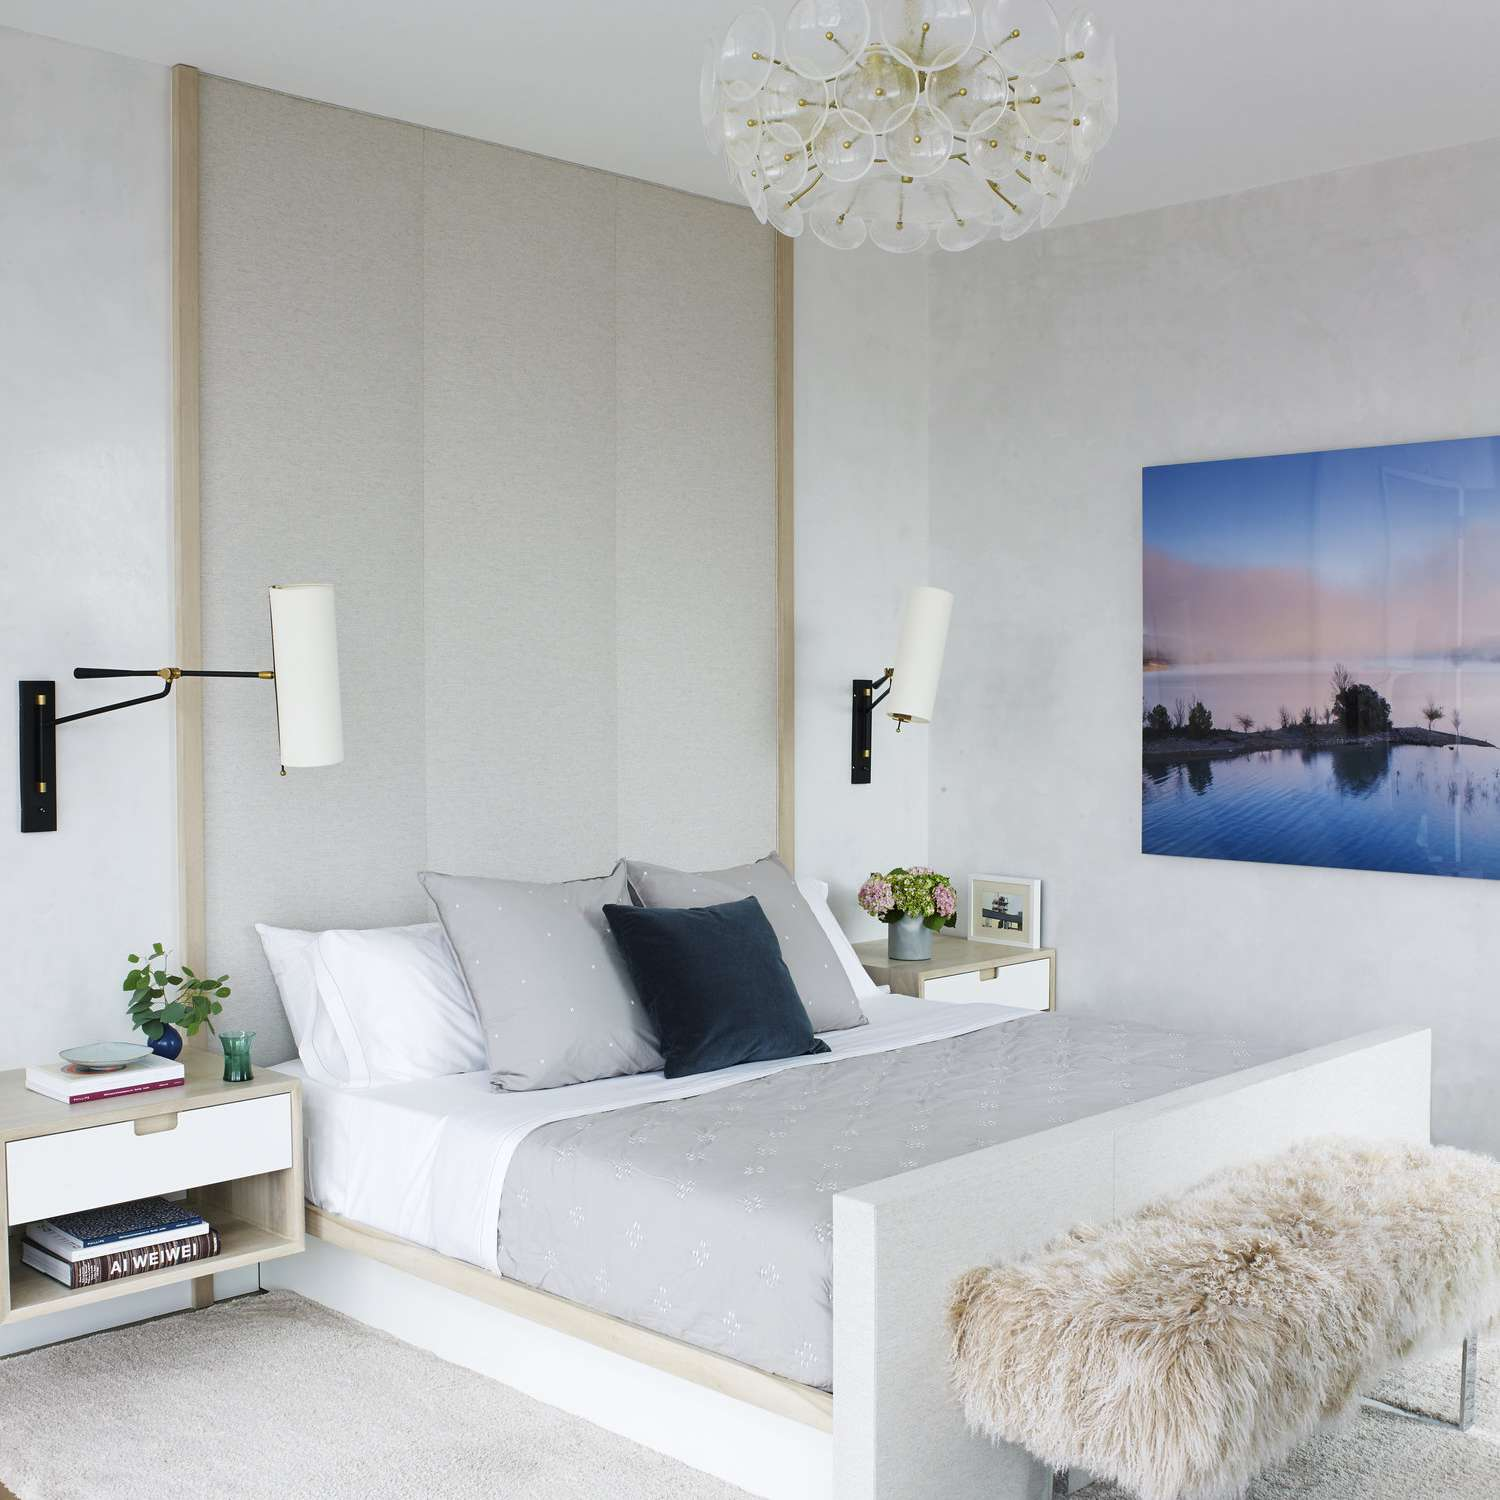 21 Minimalist Bedroom Ideas That Will Inspire You to Declutter on Minimalist Bedroom Design  id=20525